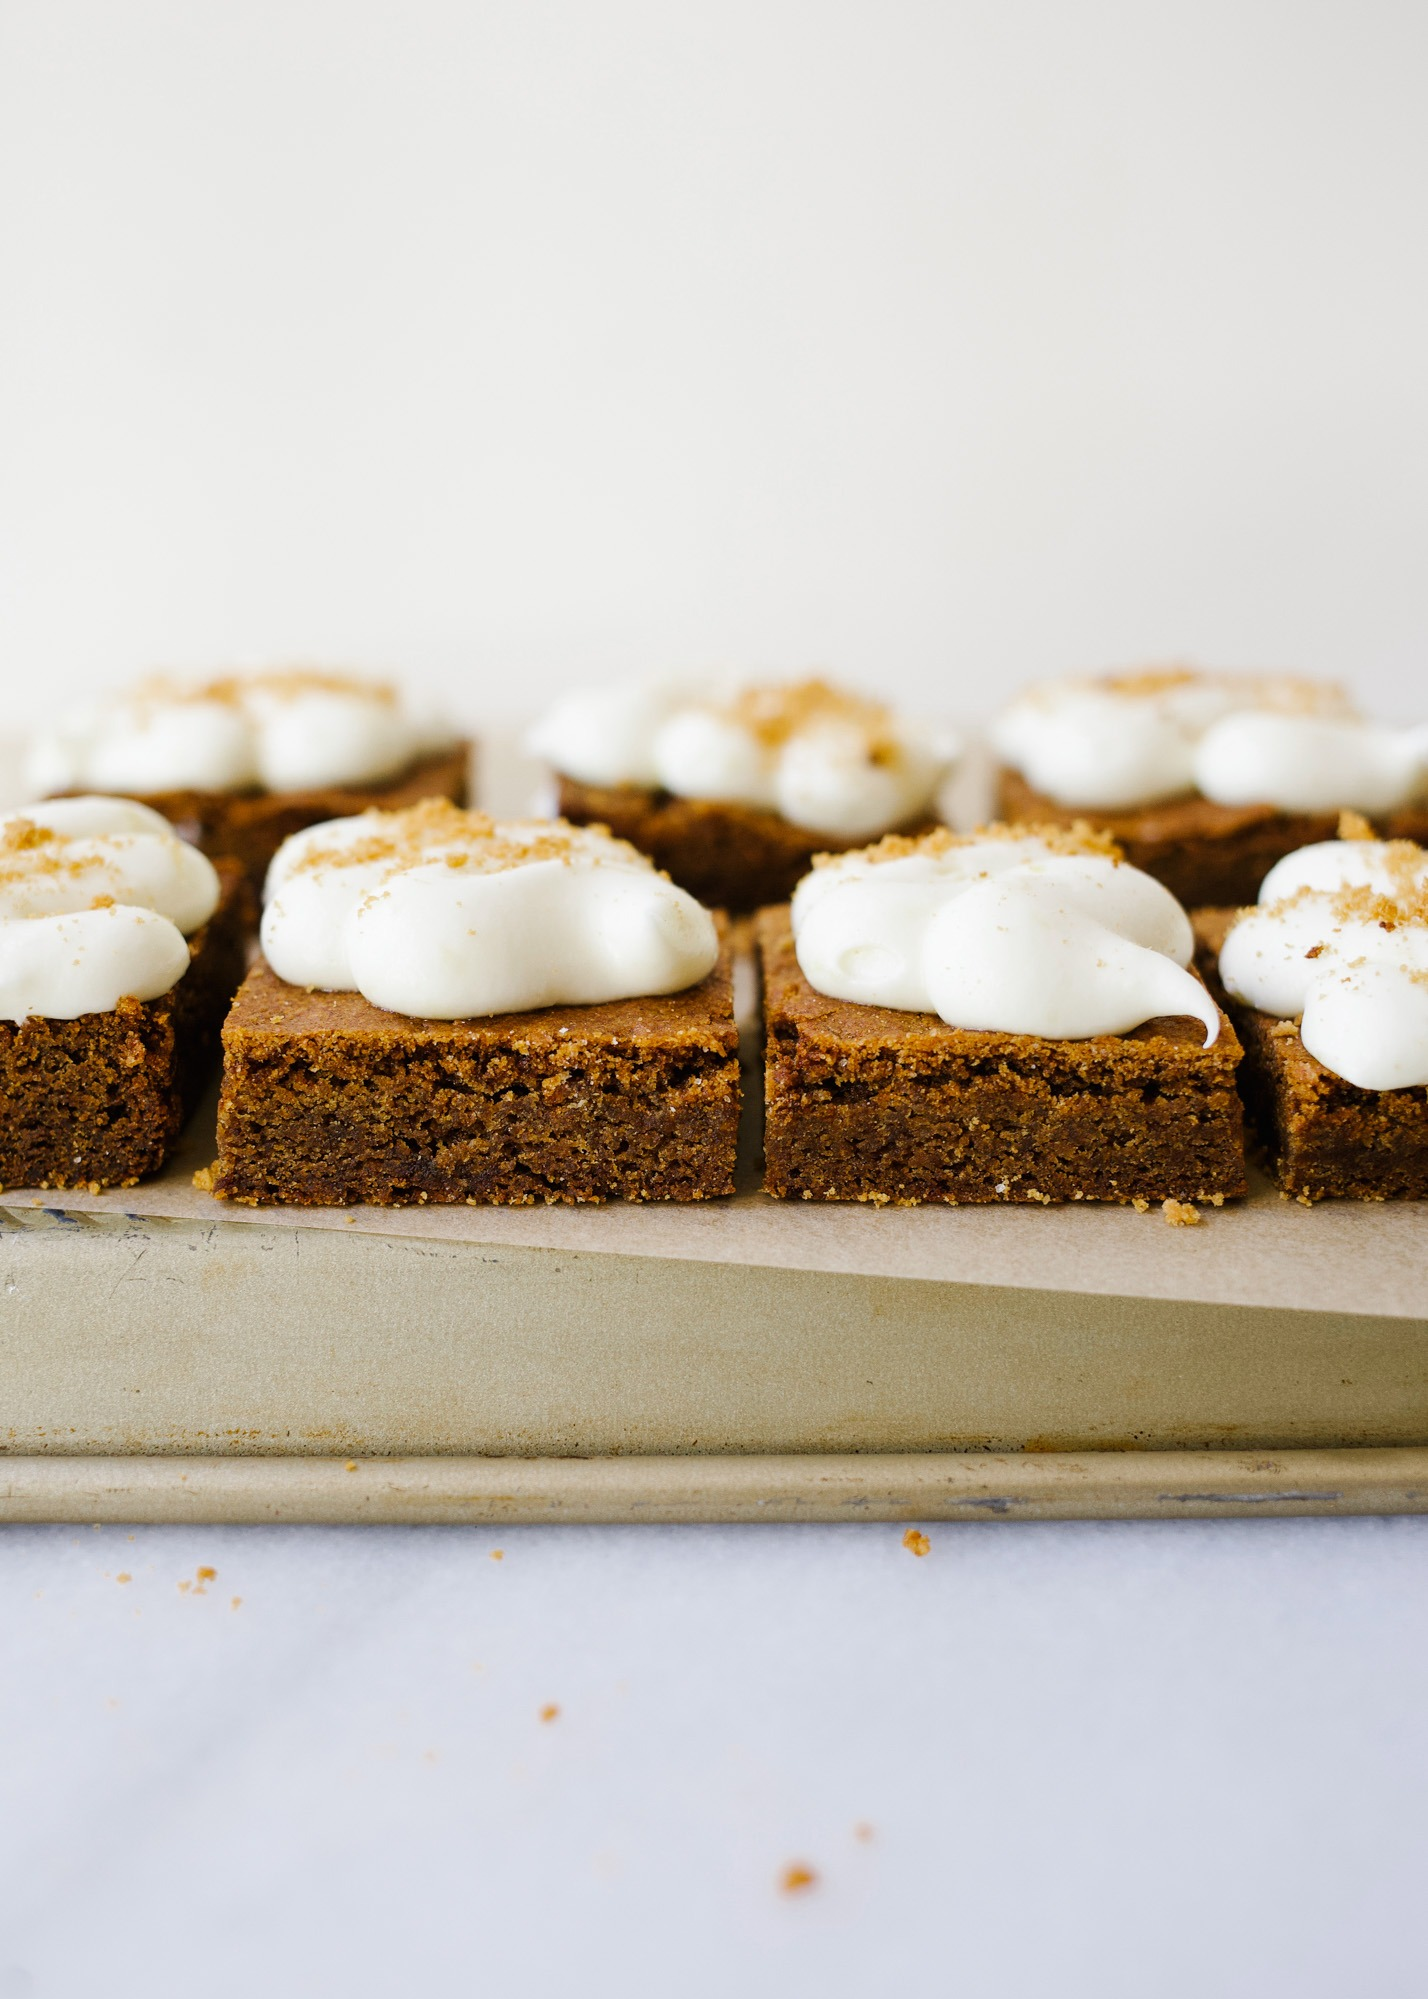 Chewy Gingerbread Lemon Bars by Wood and Spoon. These are soft blondie-like bars flavored with ginger and topped with a cream cheese and lemon frosting! These bars and sweetened and chewy, perfect for the holidays! Learn how to make these sweet gingerbread treats on thewoodandspoon.com